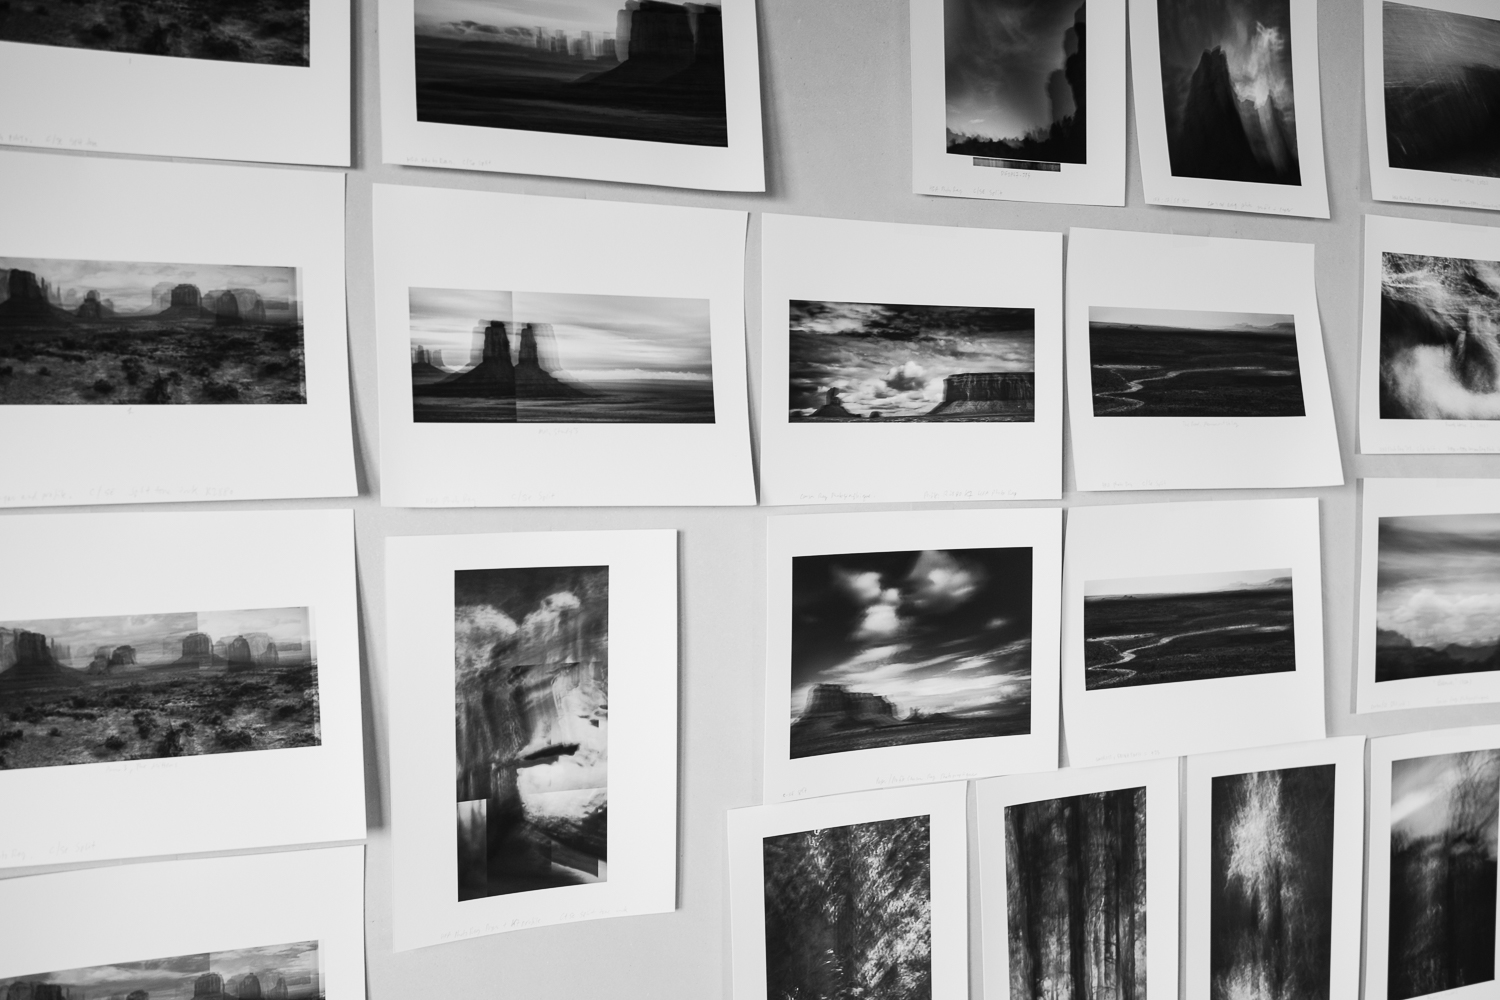 Work prints being evaluated on the wall in the studio. A long process. And not all work prints become master prints!